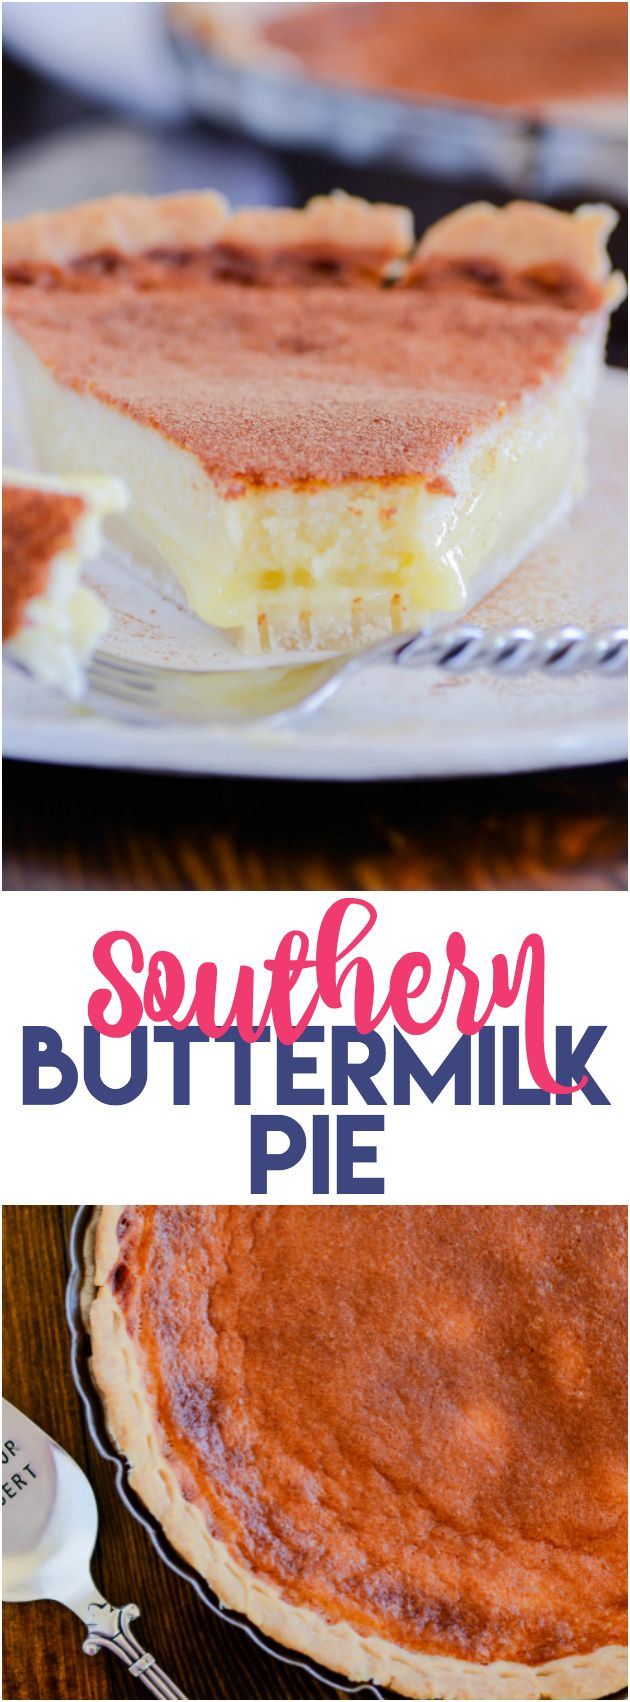 I've been dying to make this pie forever, and it did not disappoint! Creamy custard-y center baked into an all-butter homemade pie crust.